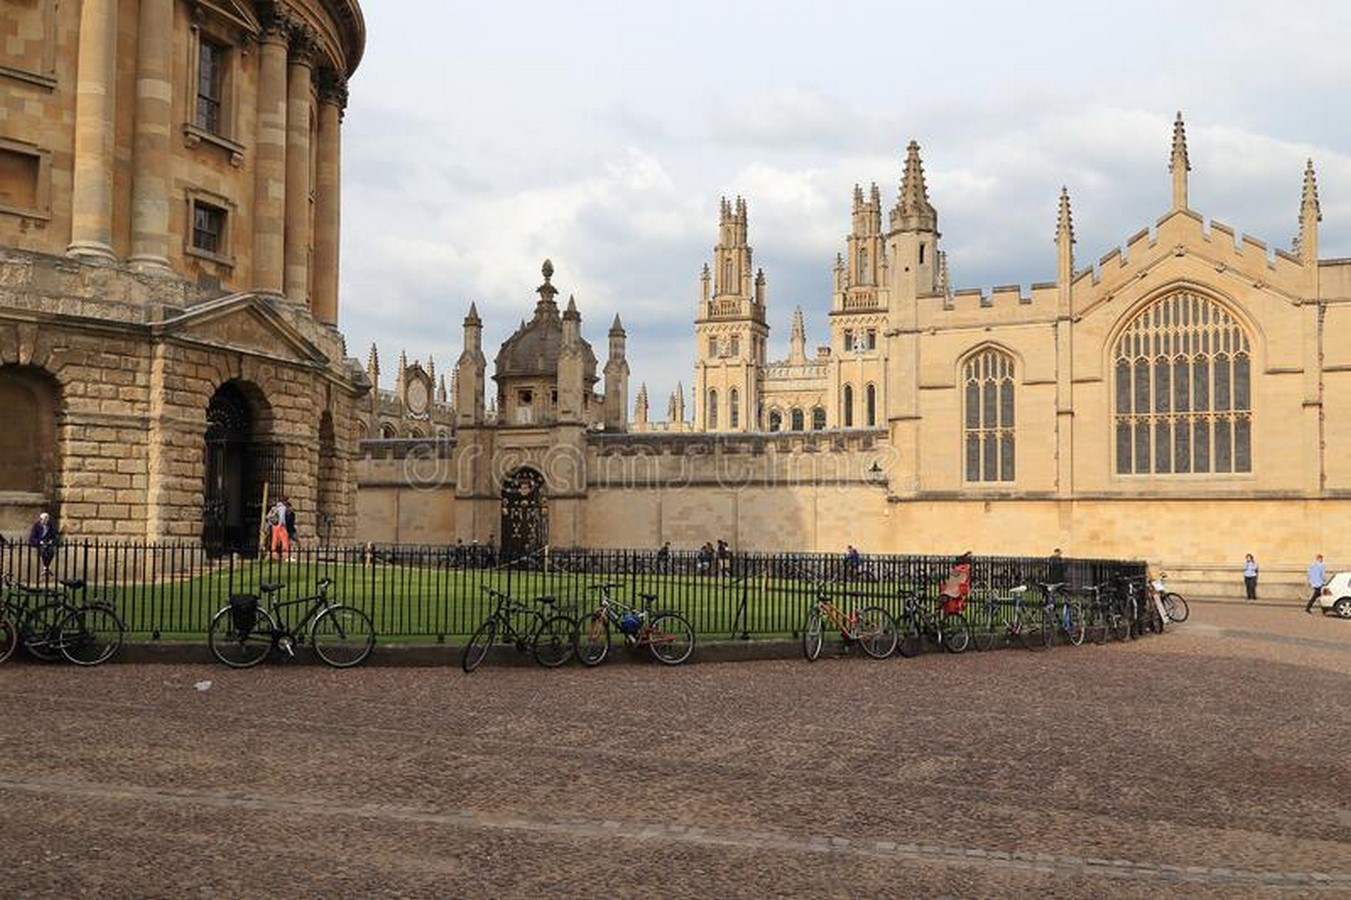 Radcliffe Square, Oxford - Sheet2